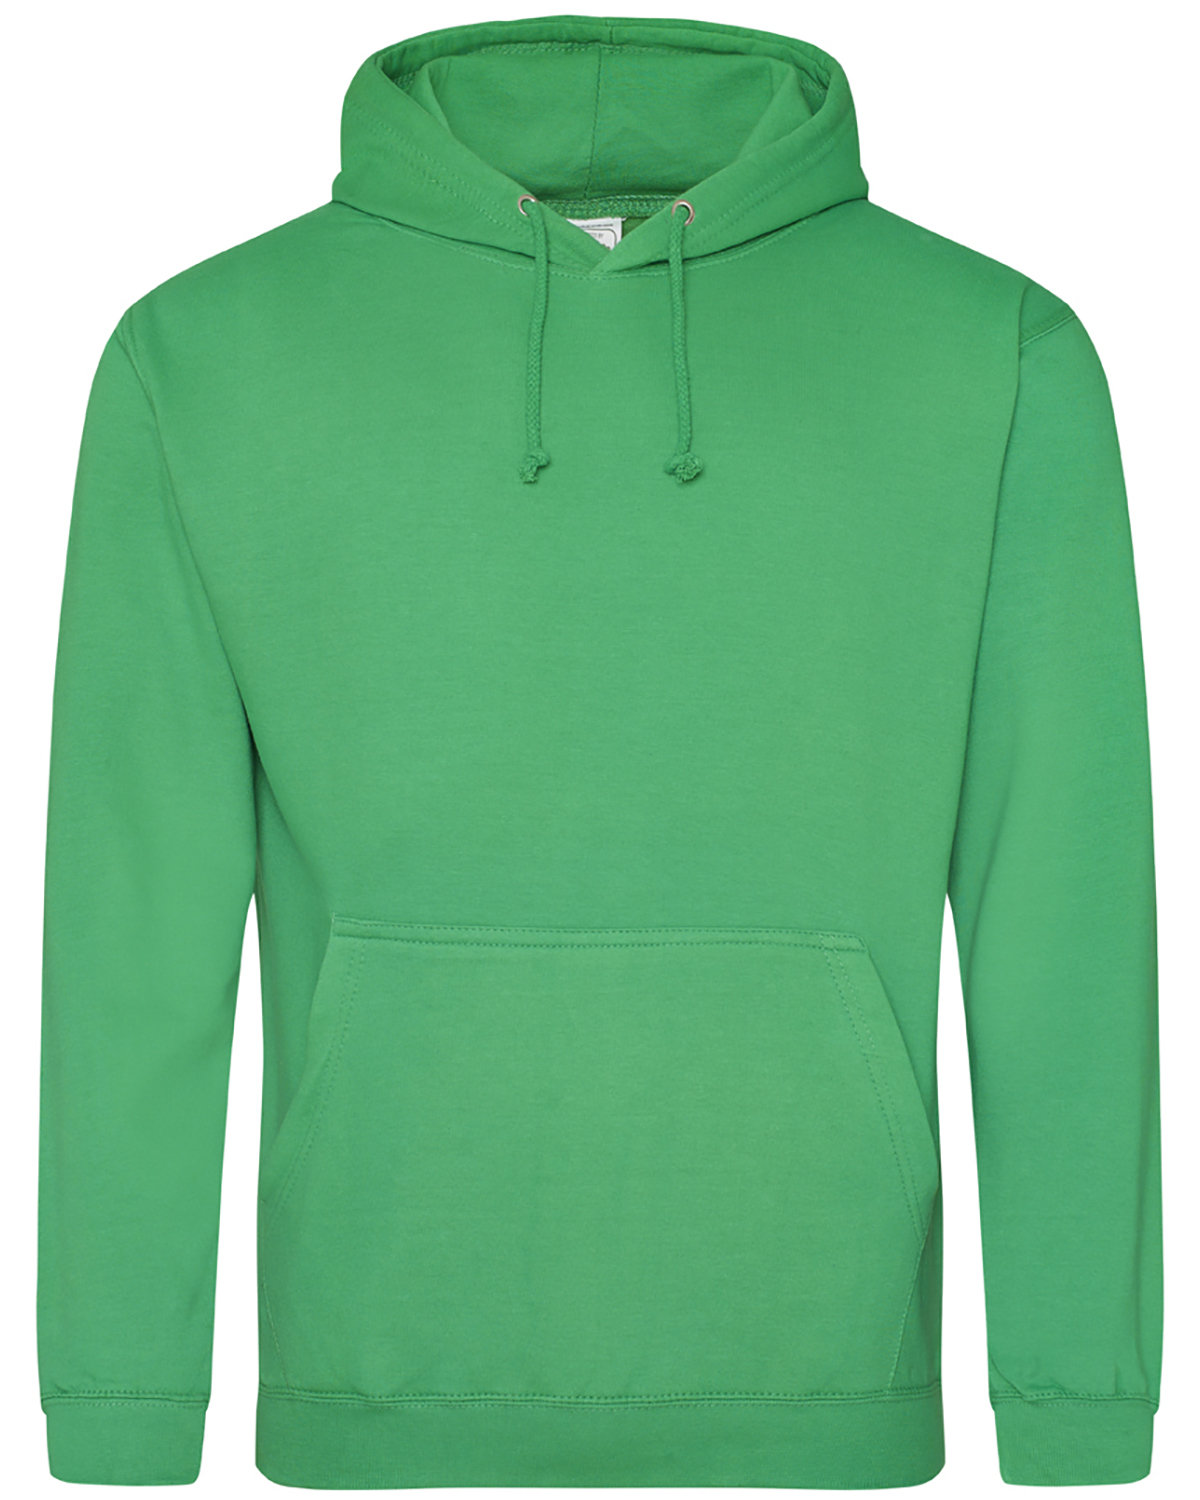 Just Hoods By AWDis Men's 80/20 Midweight College Hooded Sweatshirt KELLY GREEN